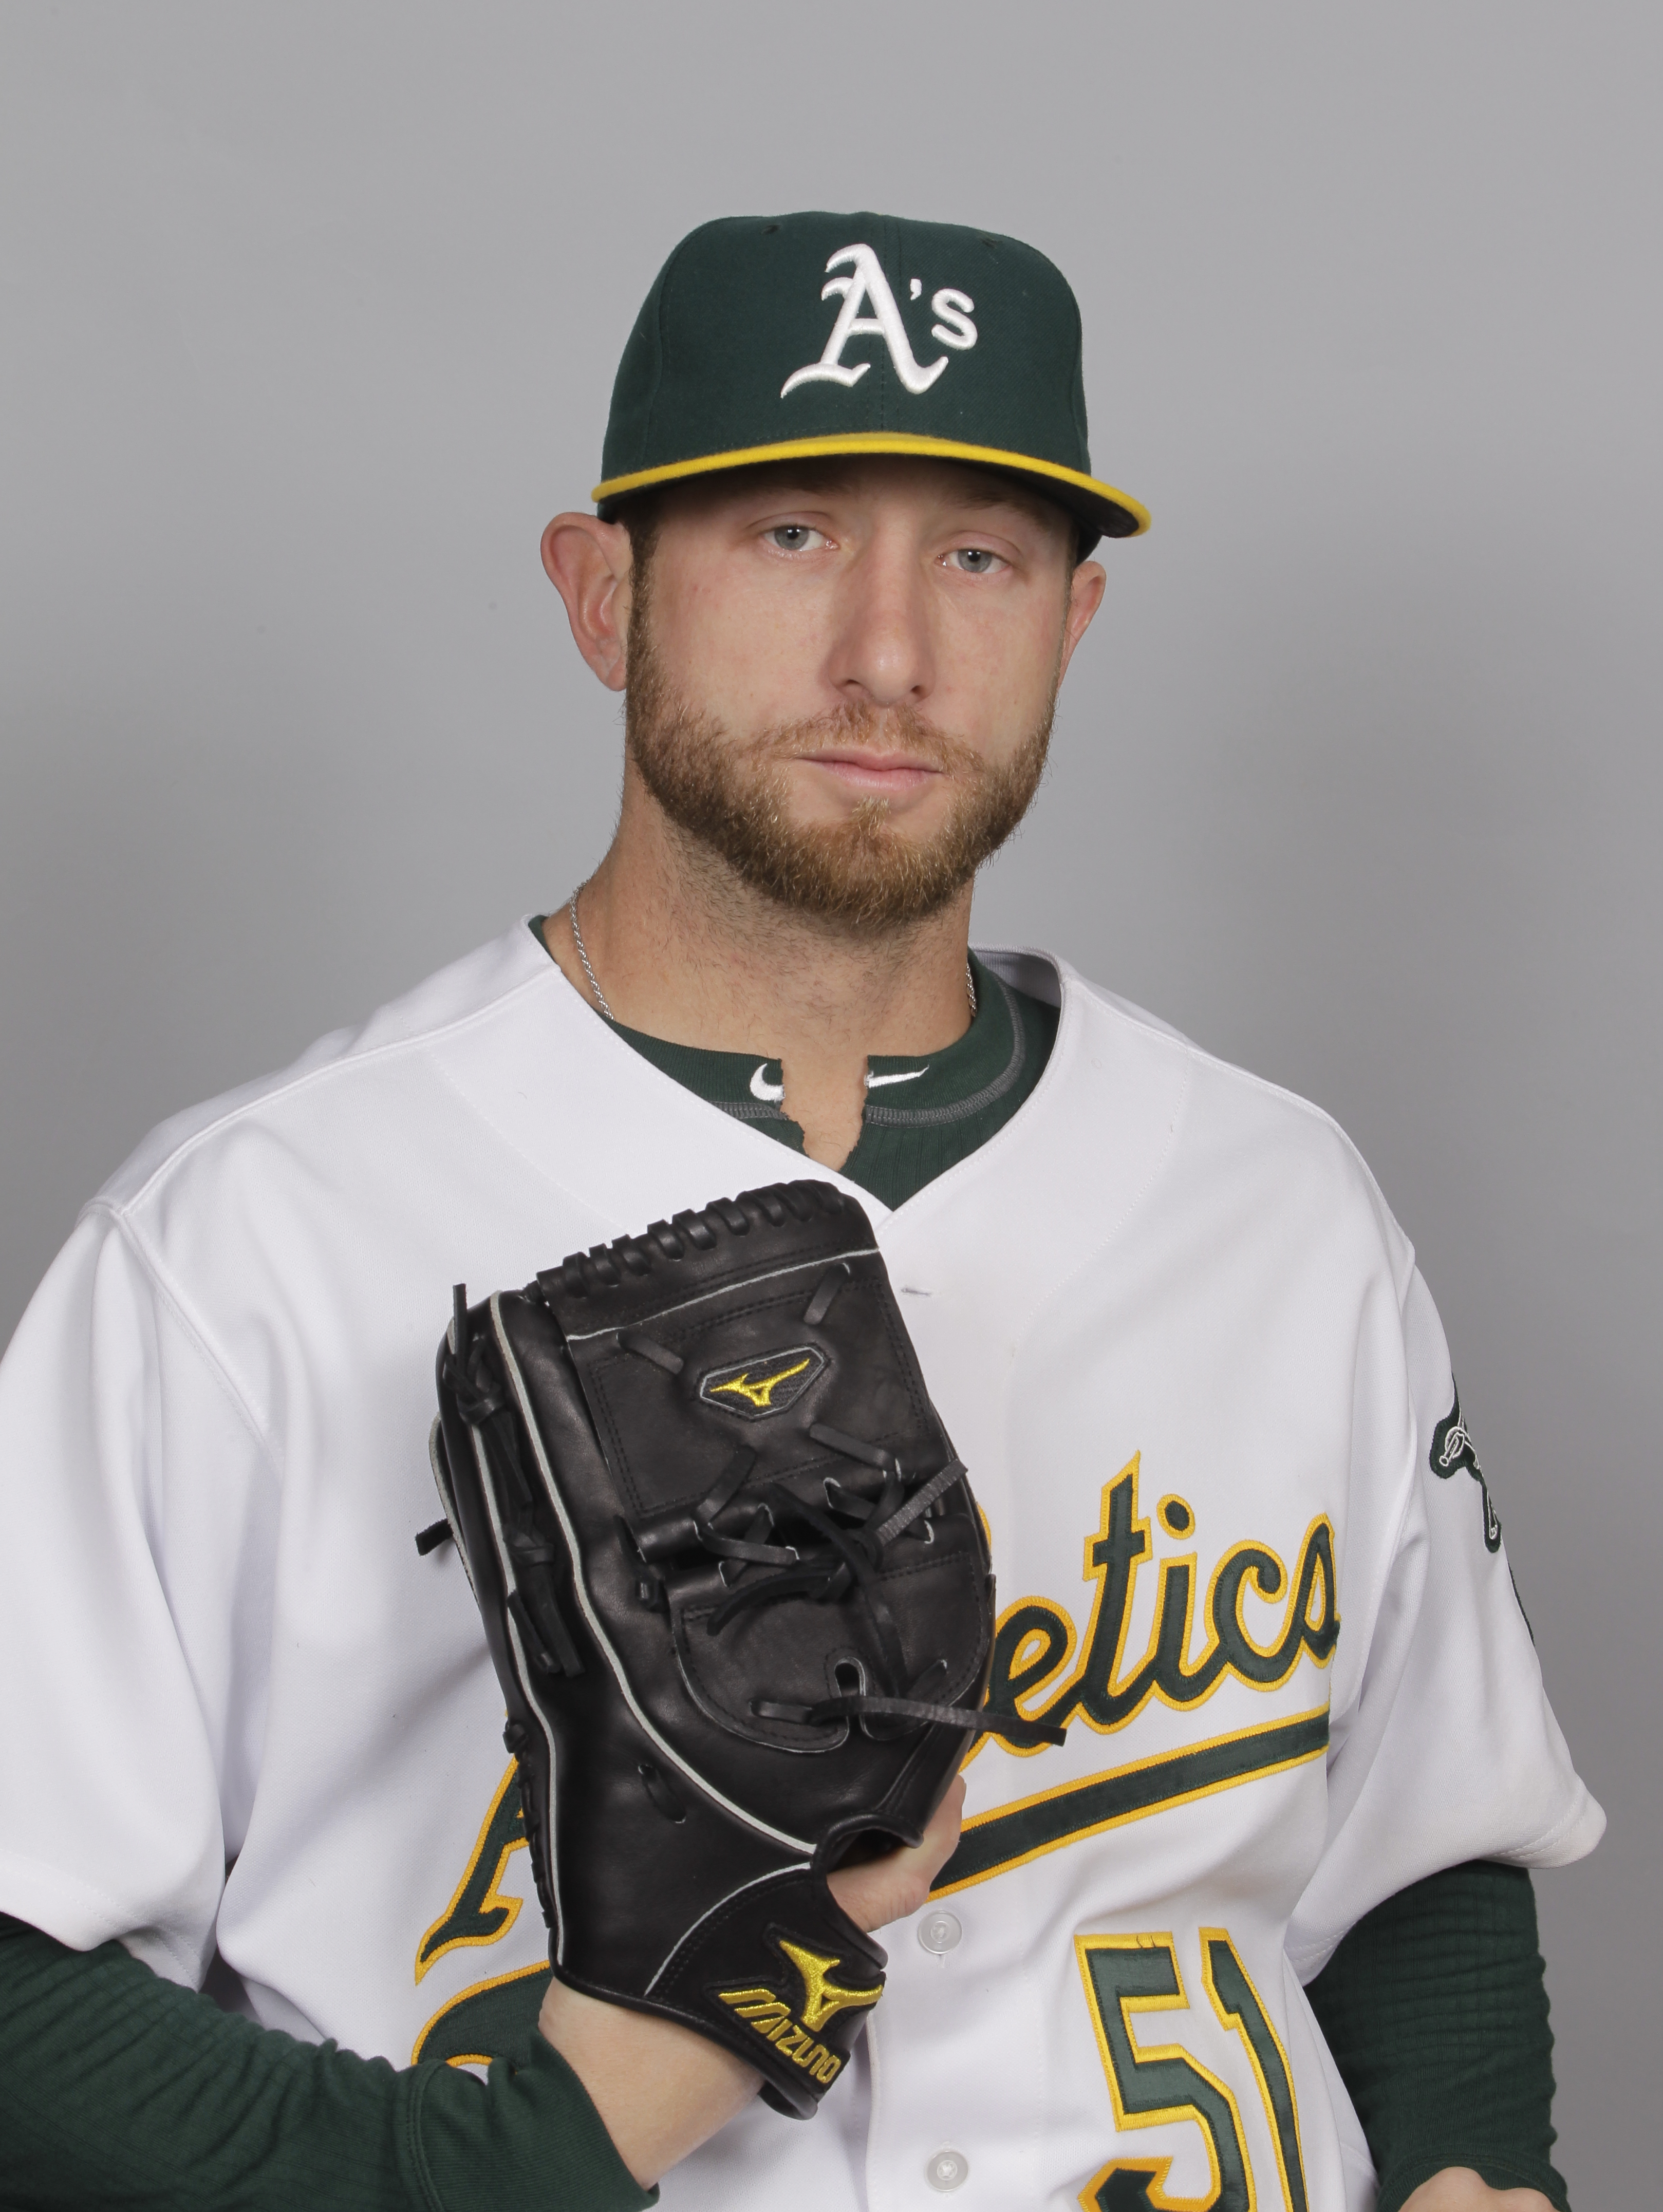 Dallas Braden Is Now Willy Wonka Or Kleinfeld From Carlitos Way